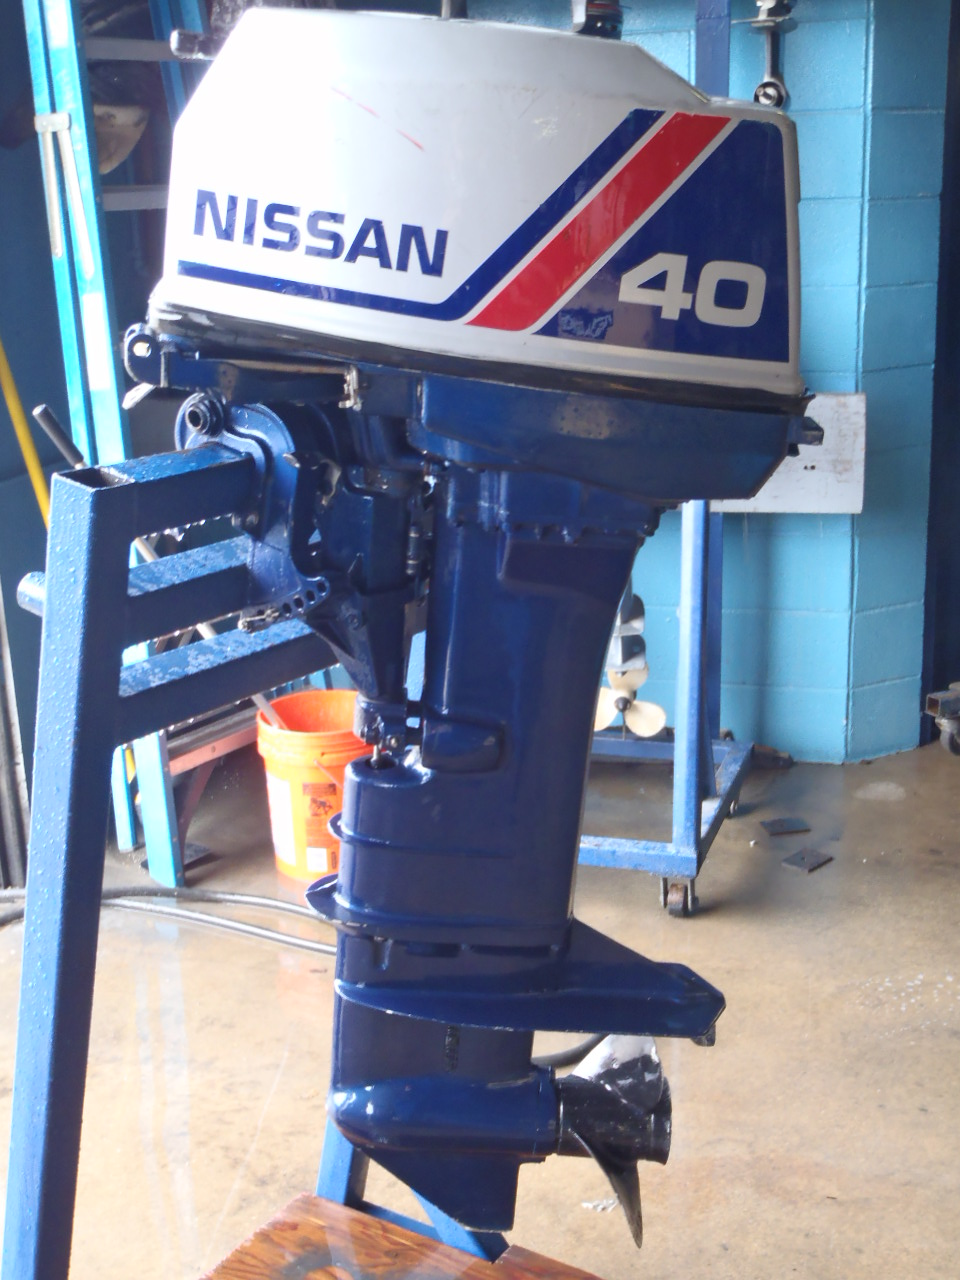 Used 1986 nissan ns40cep2 40hp 2 stroke remote outboard for 2 stroke boat motors